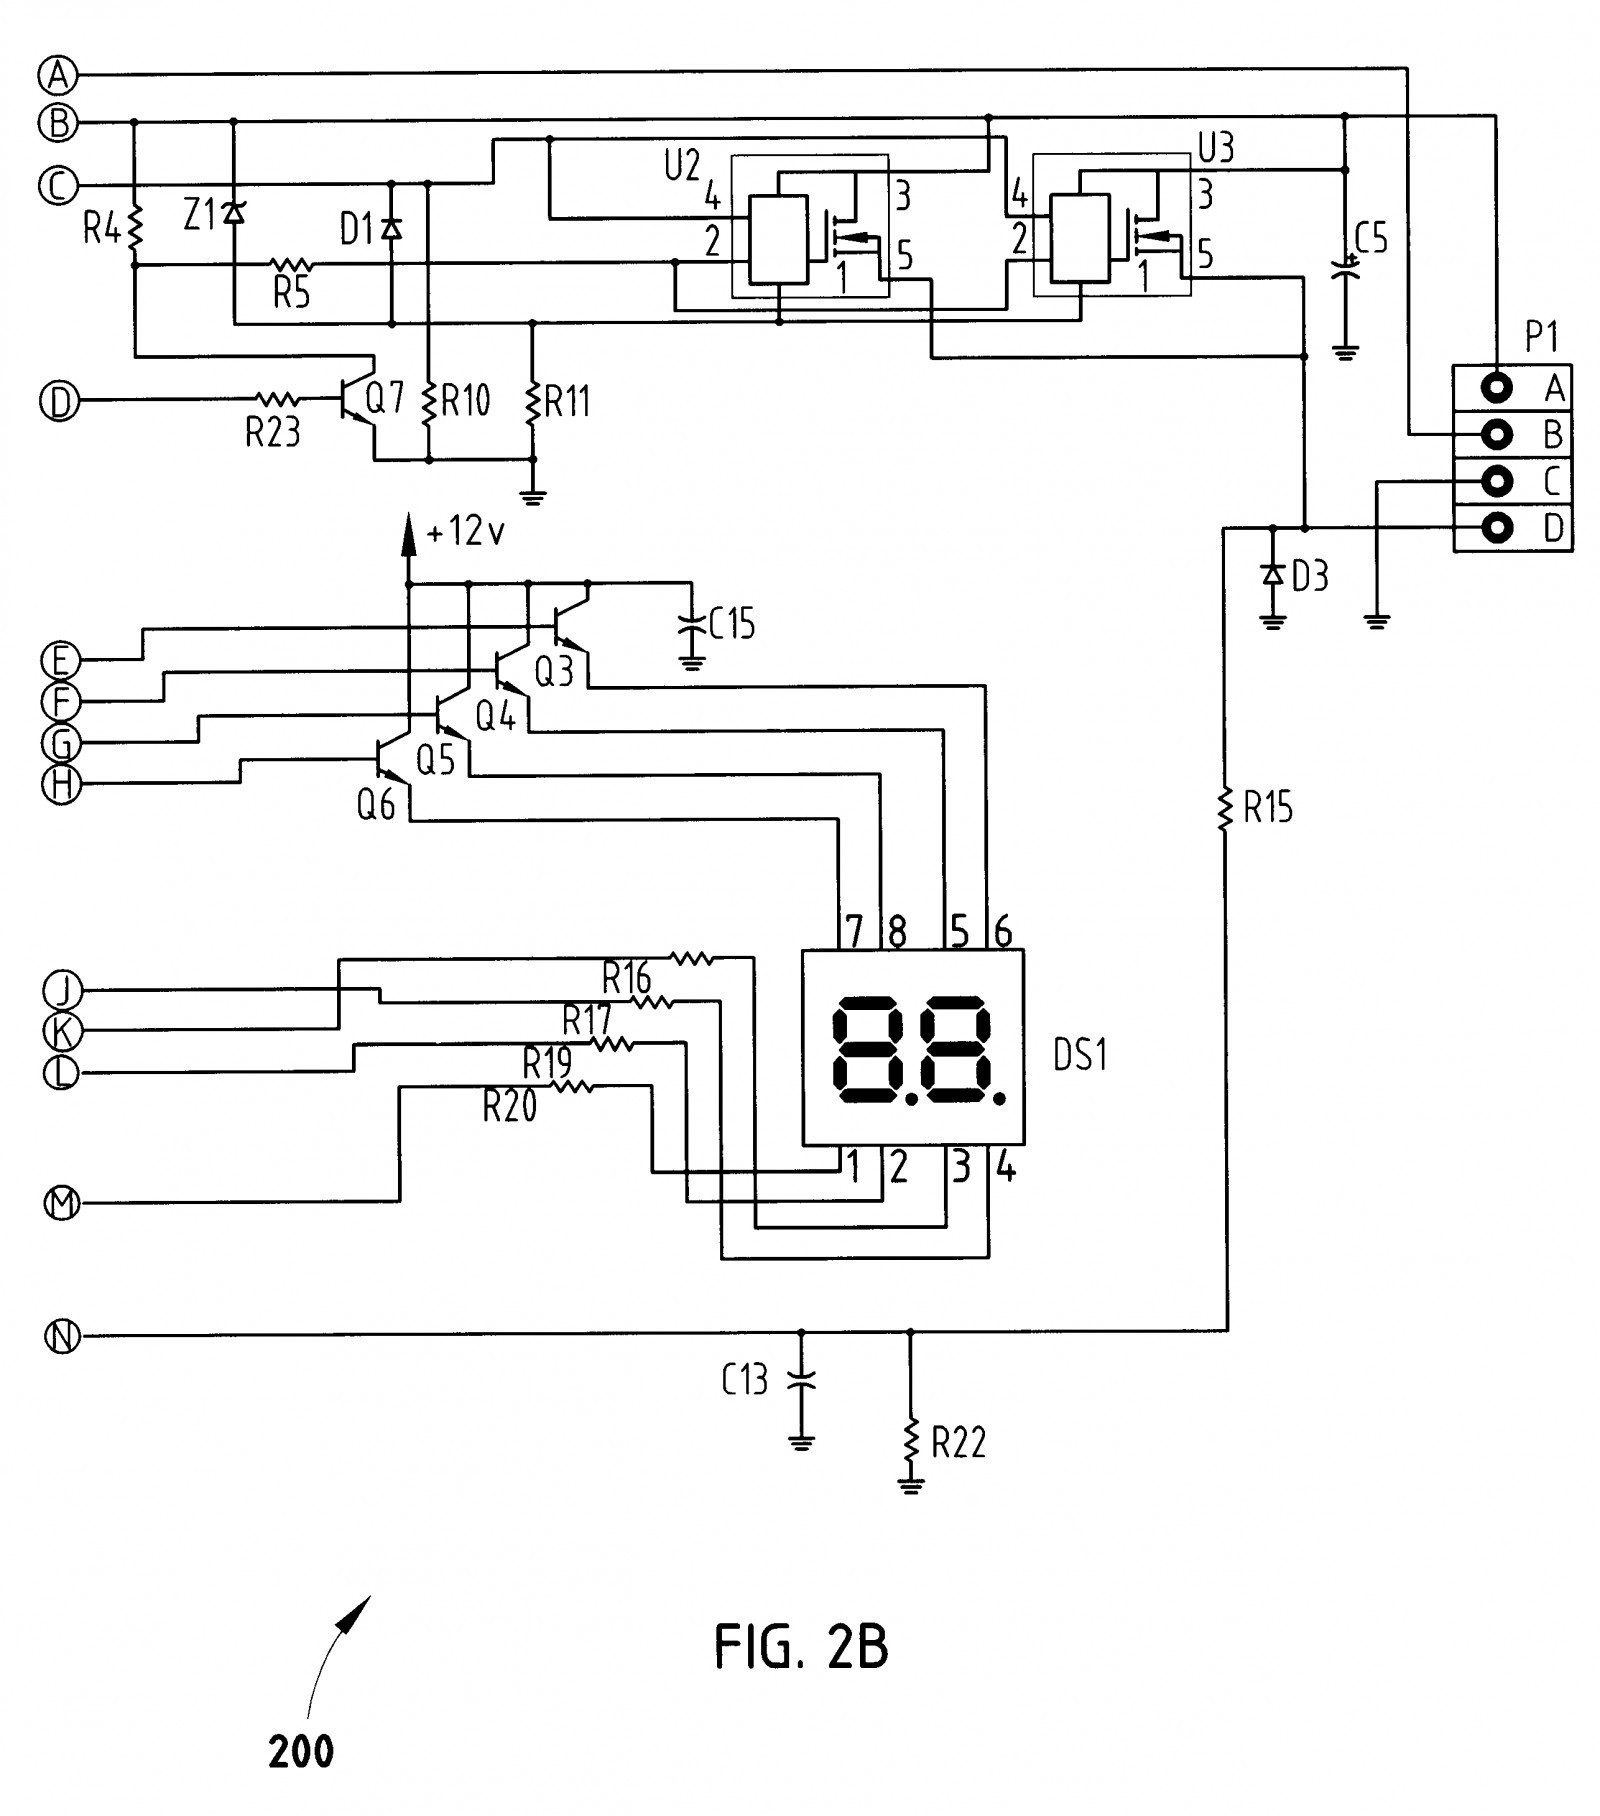 curt brake controller wiring diagram Download-Wiring Diagram for Trailer Brake Controller New Hopkins Brake Controller Wiring Diagram Electrics Schematic for Curt 8-h